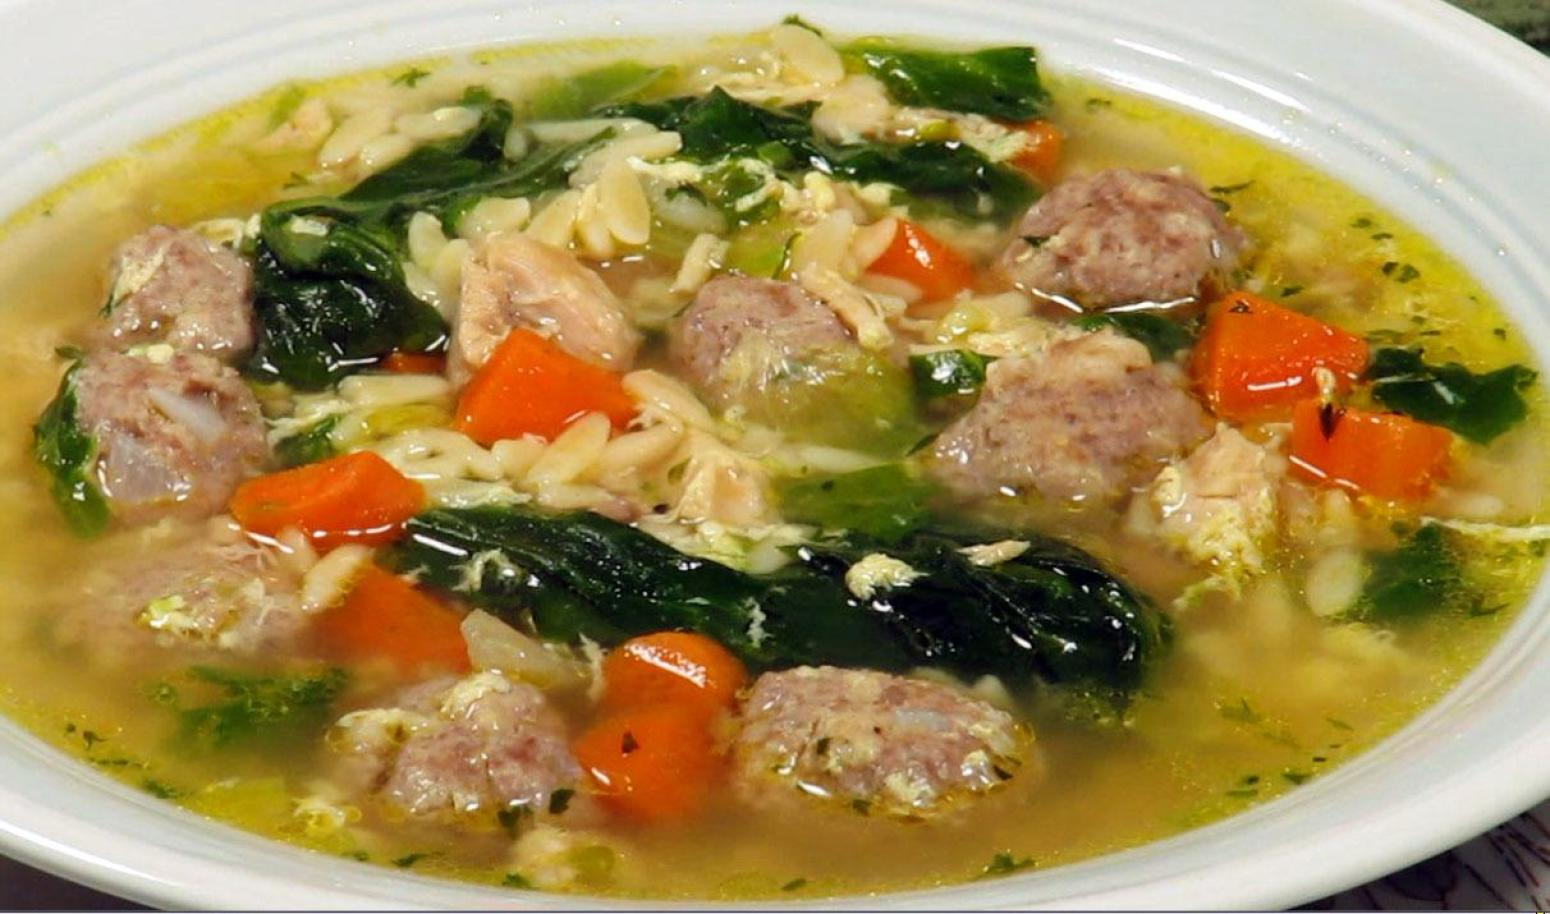 Italian Wedding Soup Recipe 2 | Just A Pinch Recipes